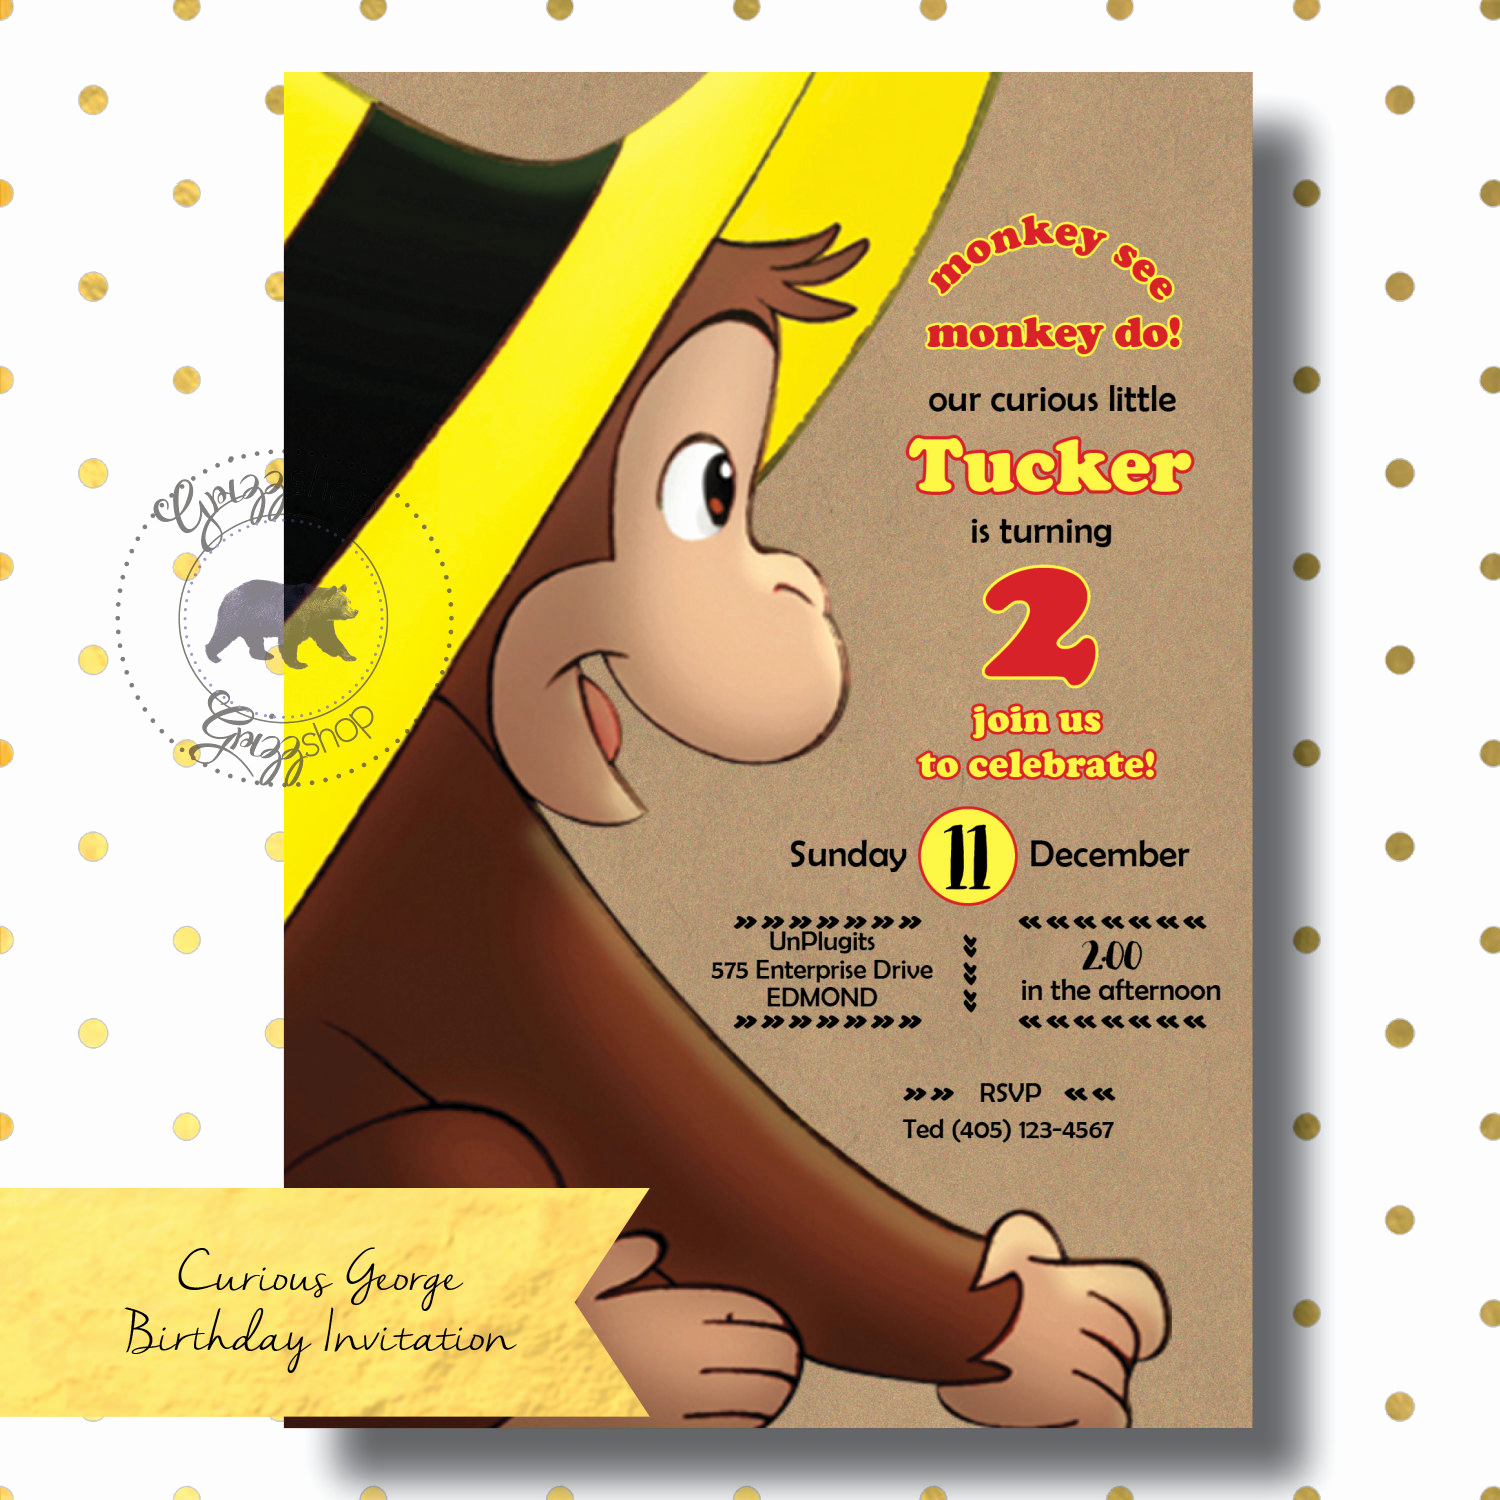 Curious George Invitation Template Elegant Curious George Birthday Invitation